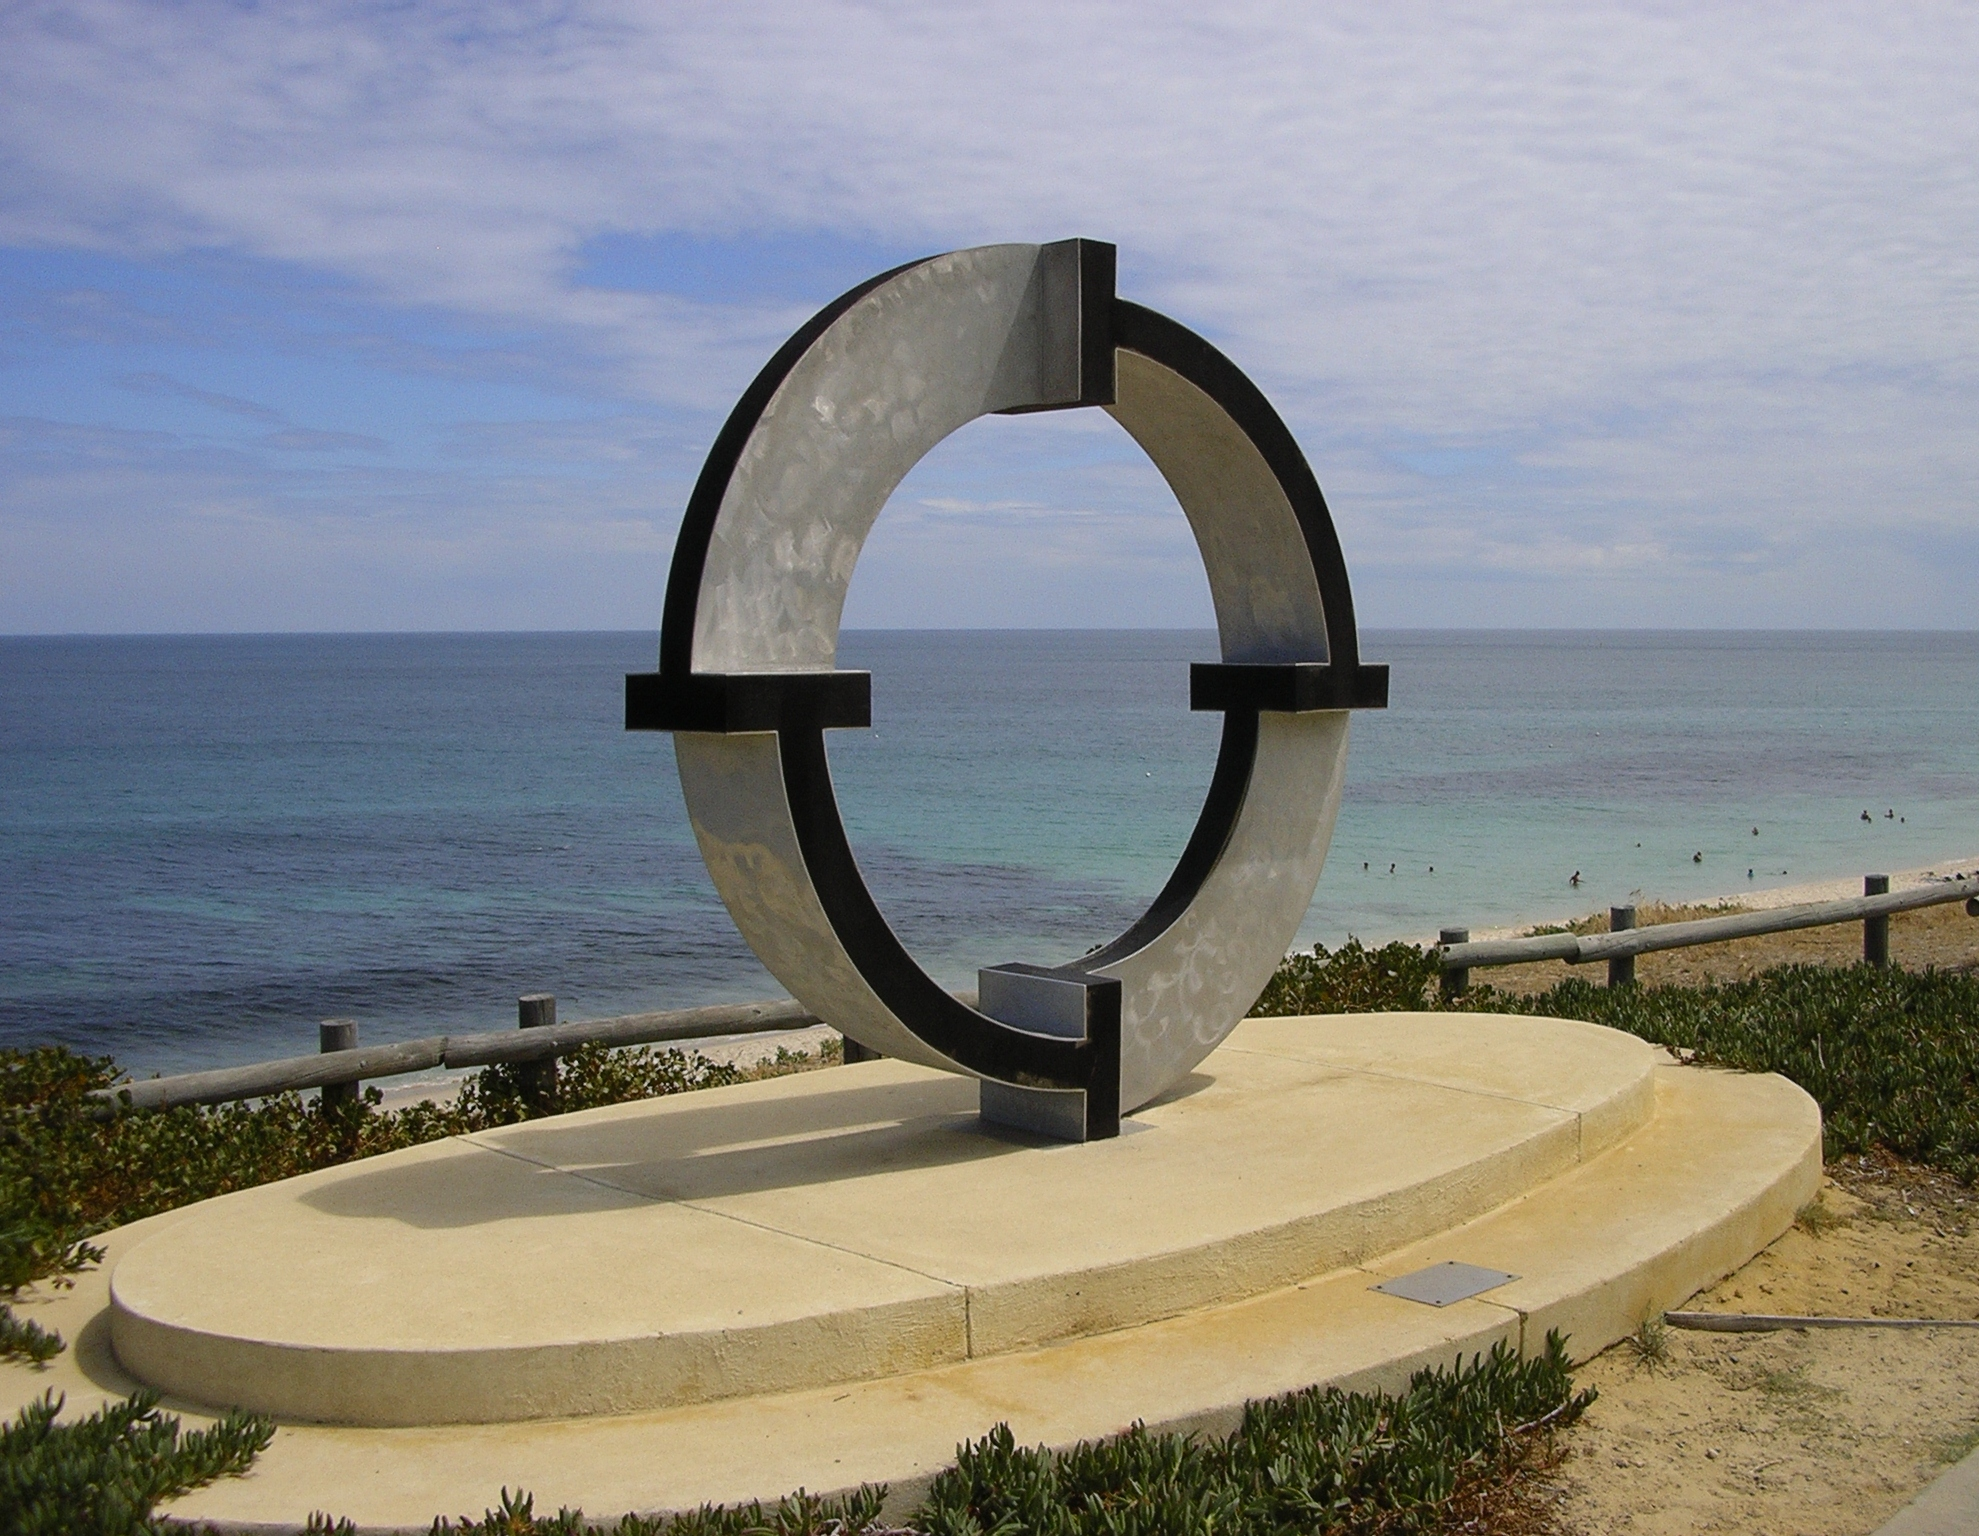 Perth Weather likewise File Public Art Centrefold  Cottesloe besides Bob Grant furthermore Oceania1 together with Pizza Debate Does Pineapple Belong On Pizza Ng B88350252z. on the cottesloe